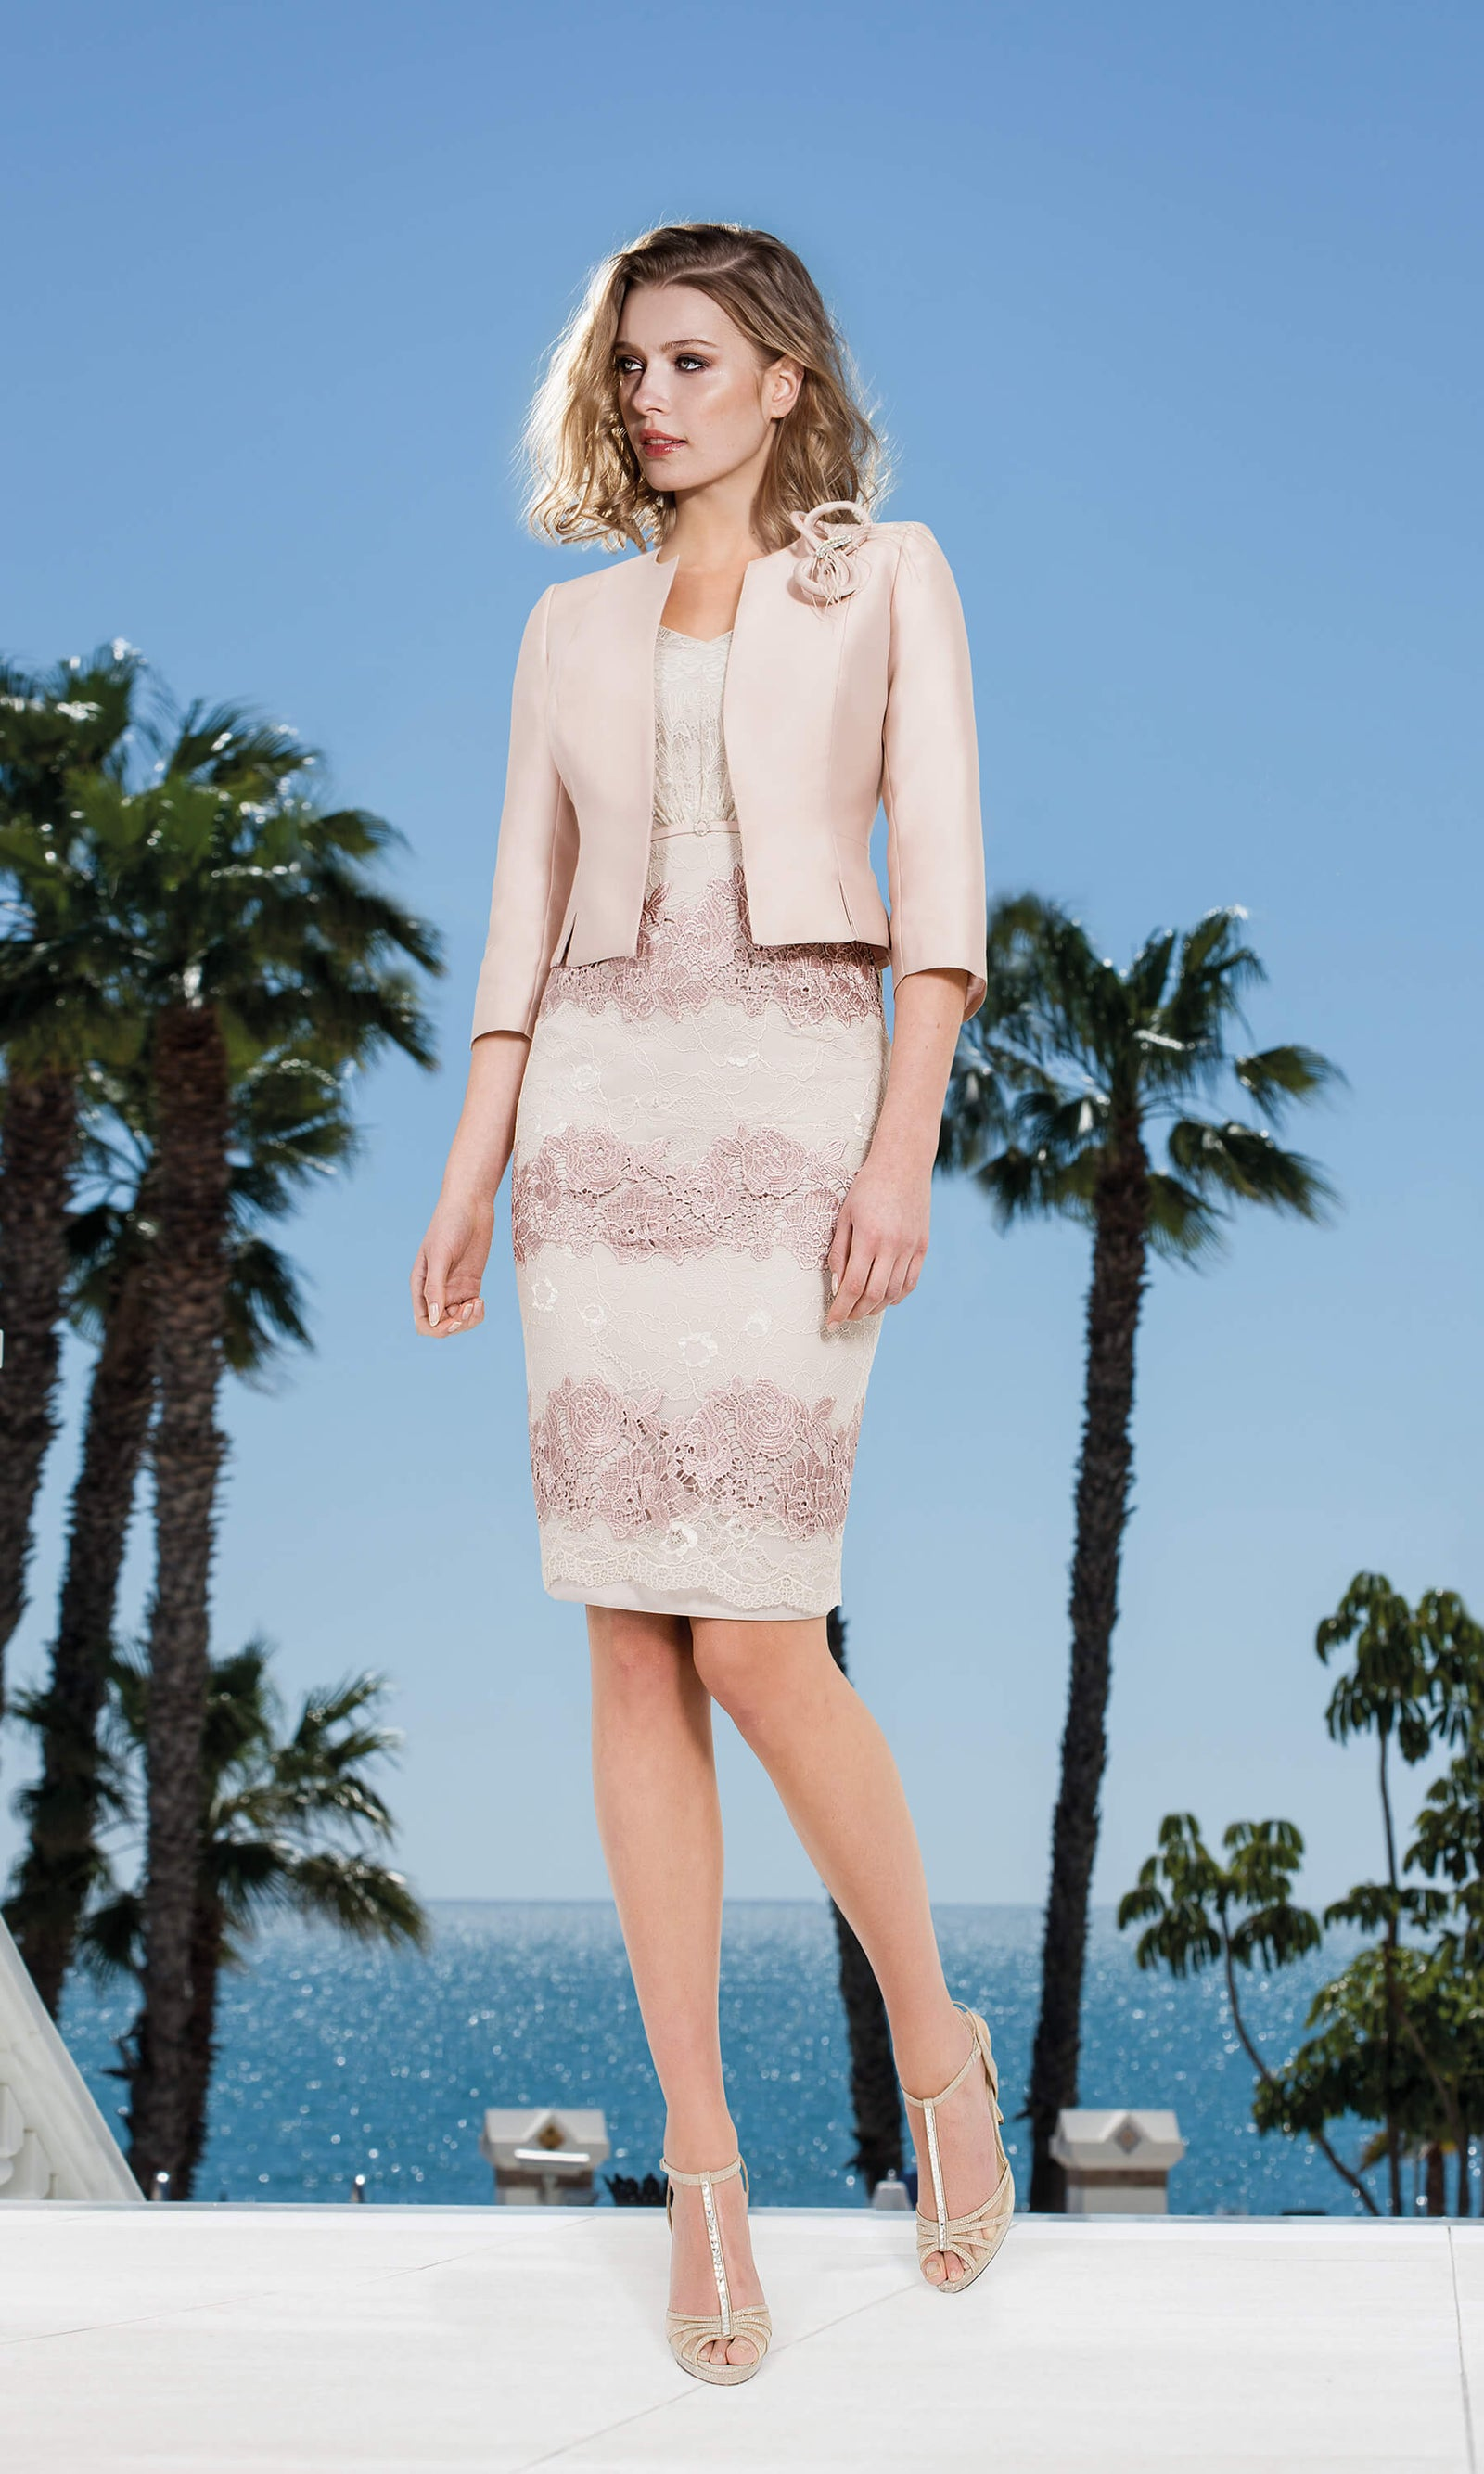 stable quality get new elegant shoes 11190117 Pastel Pink Sonia Pena Lace Dress With Bolero